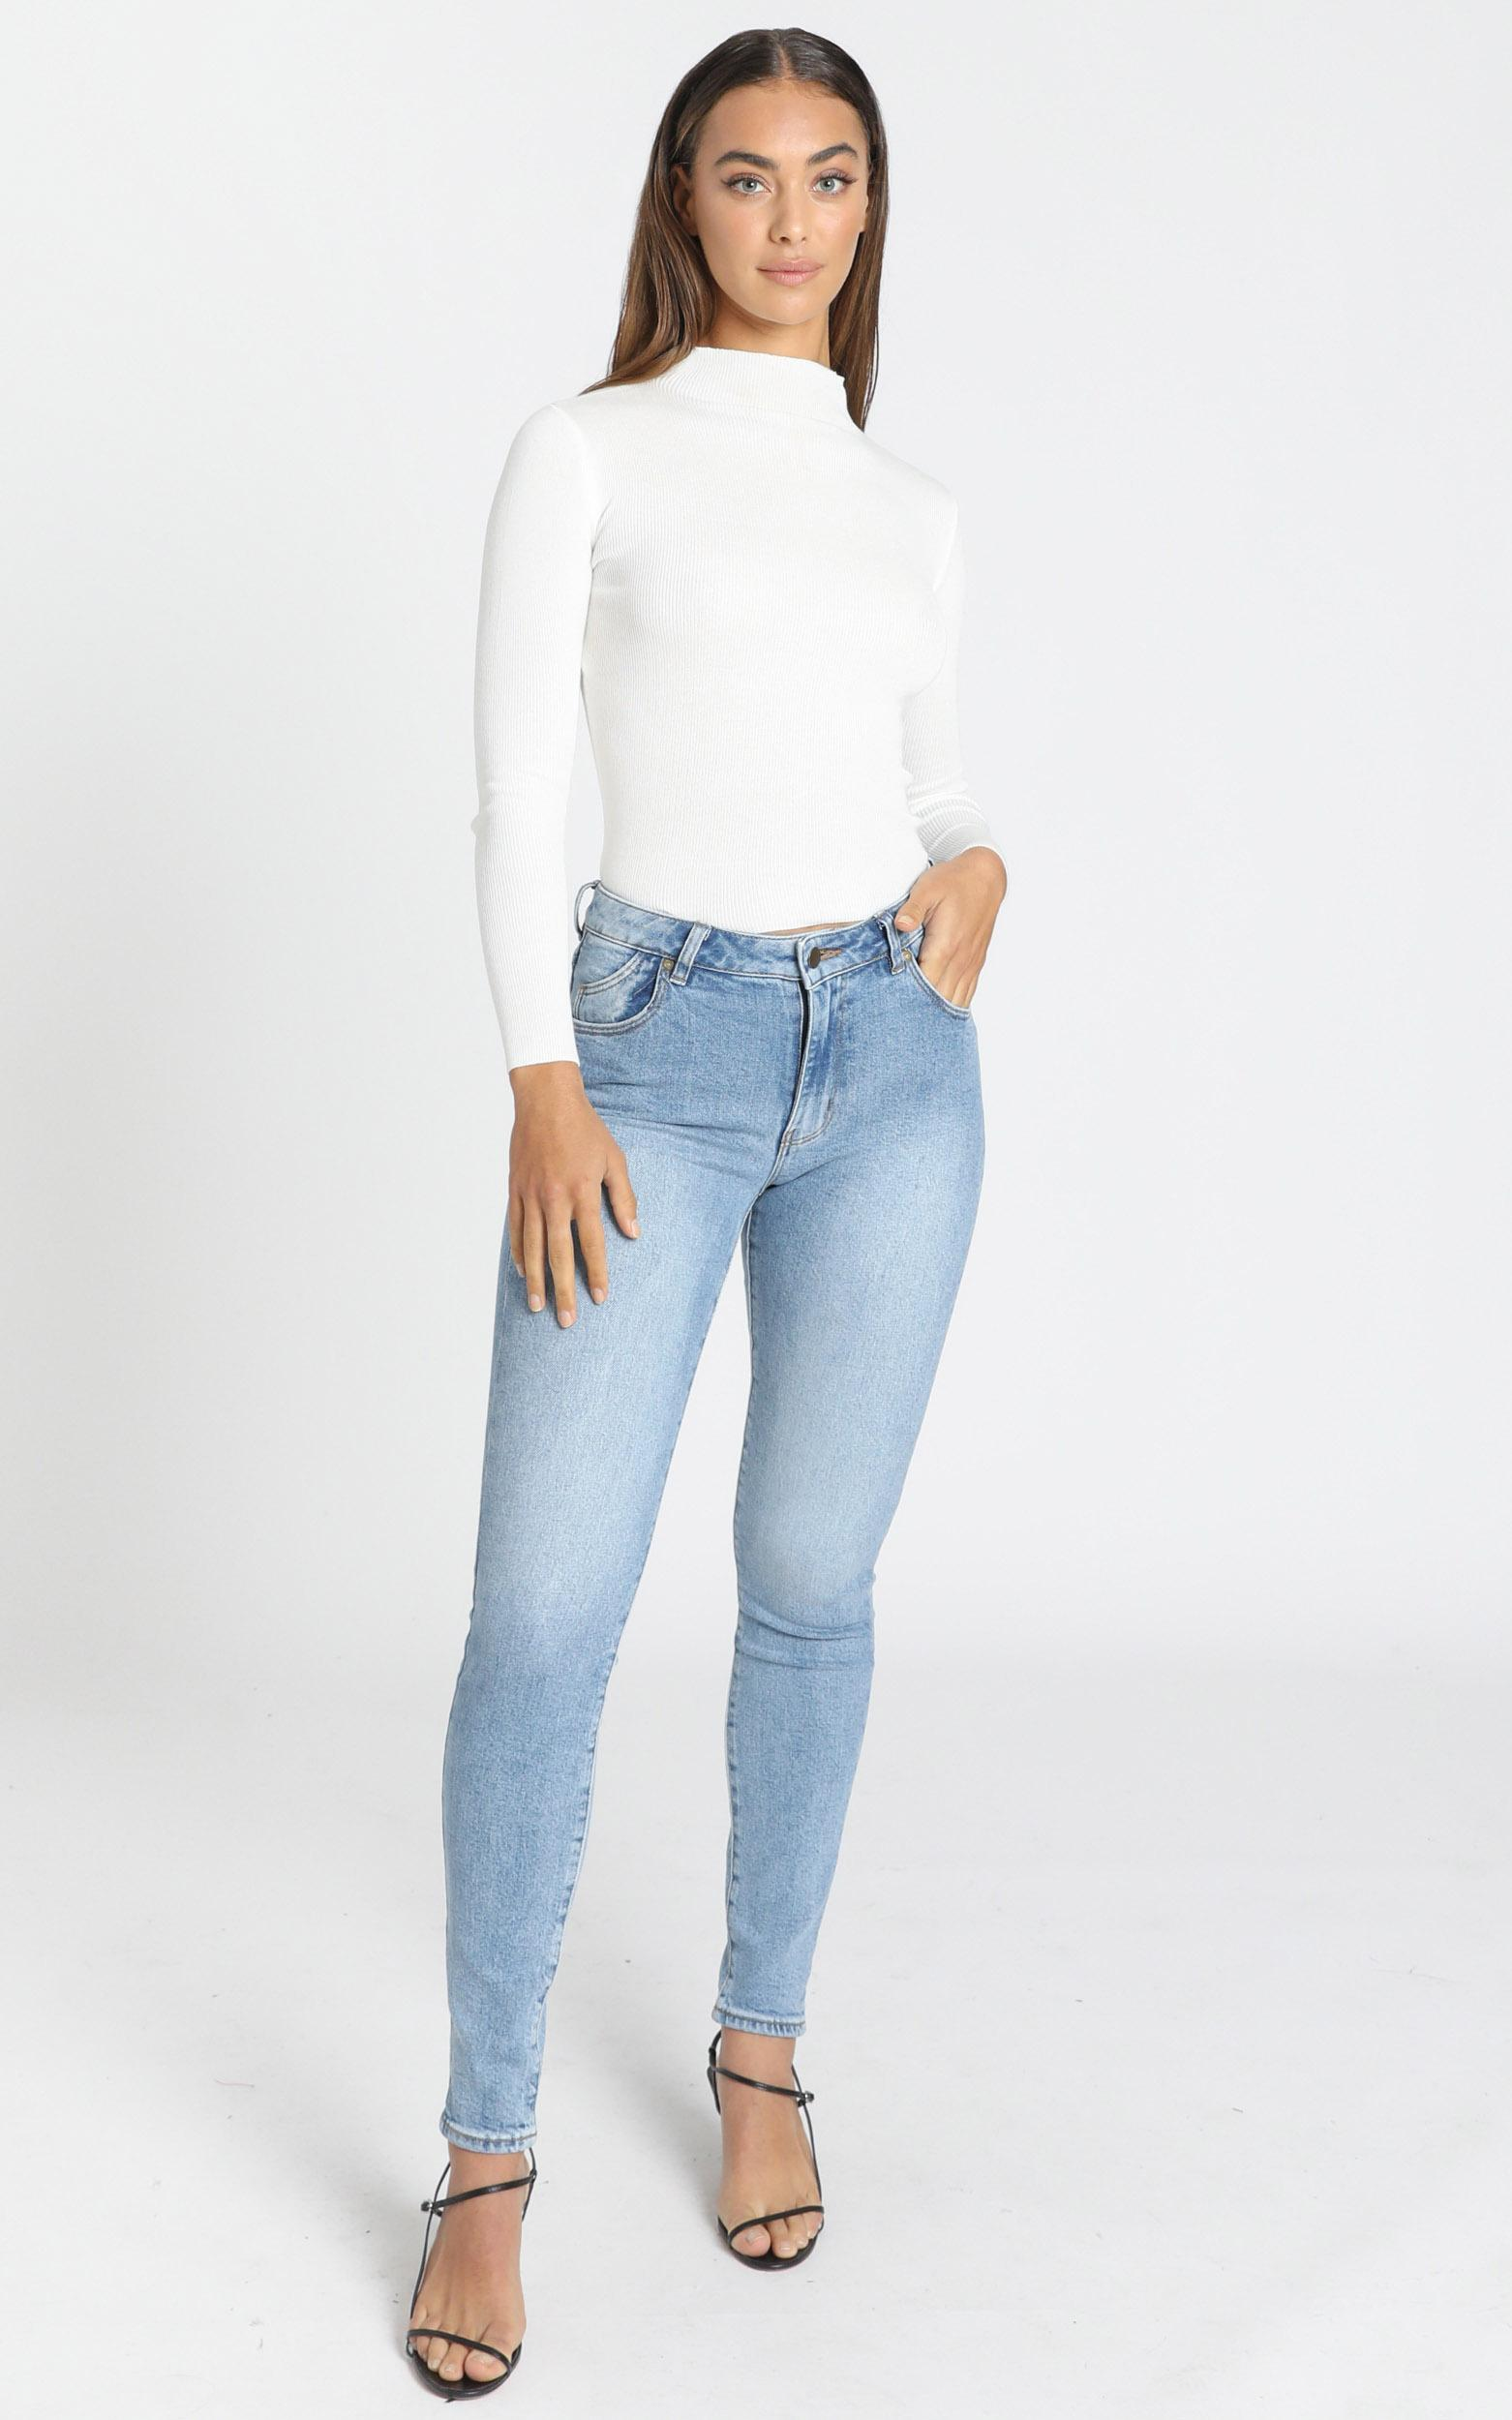 Rollas - Westcoast Ankle Jeans in camille blue organic - 6 (XS), Blue, hi-res image number null